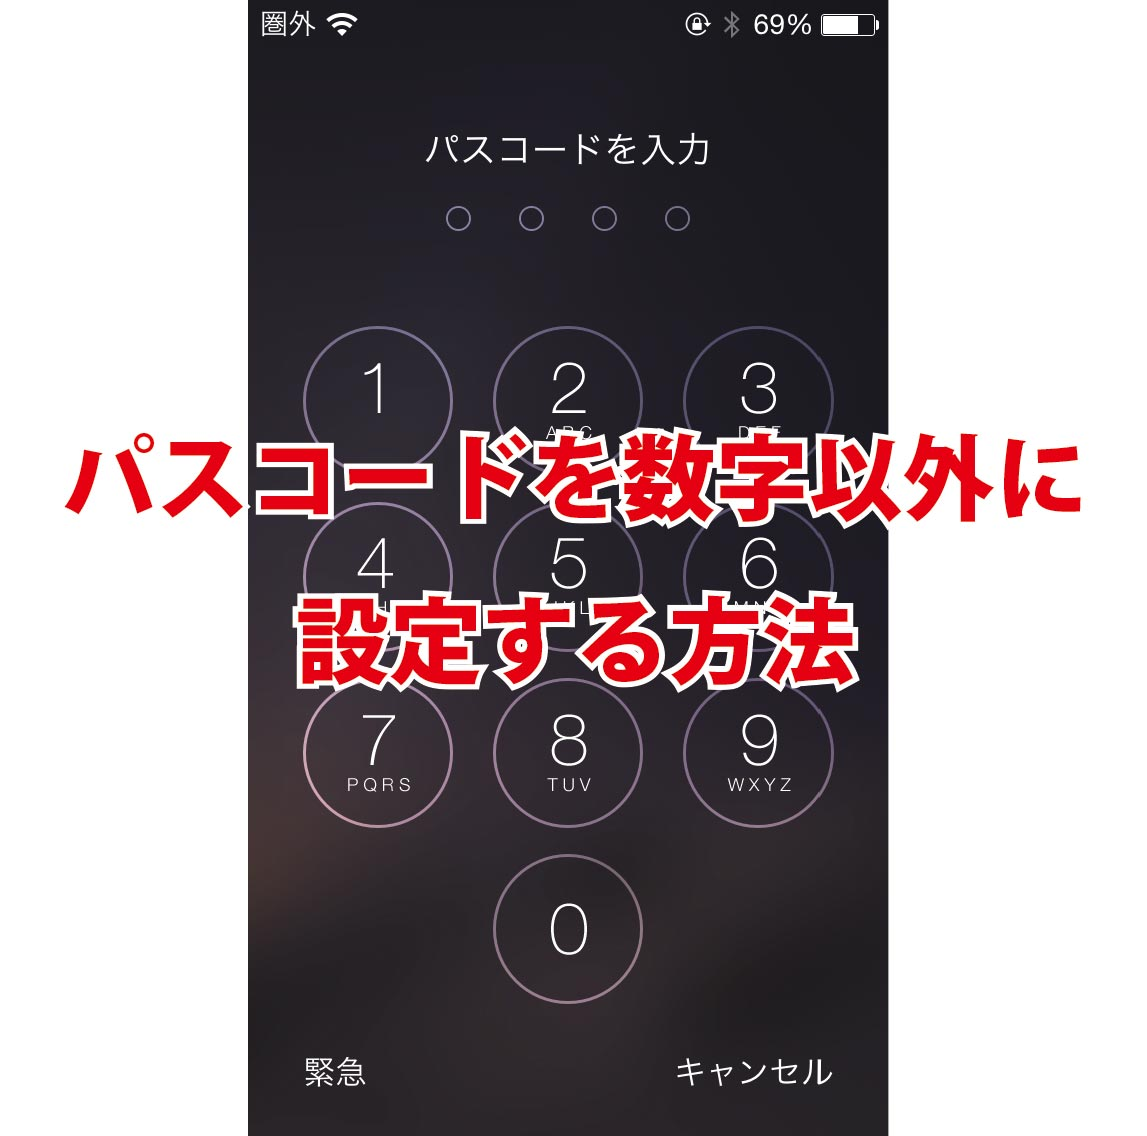 iphone-passcode001.jpg